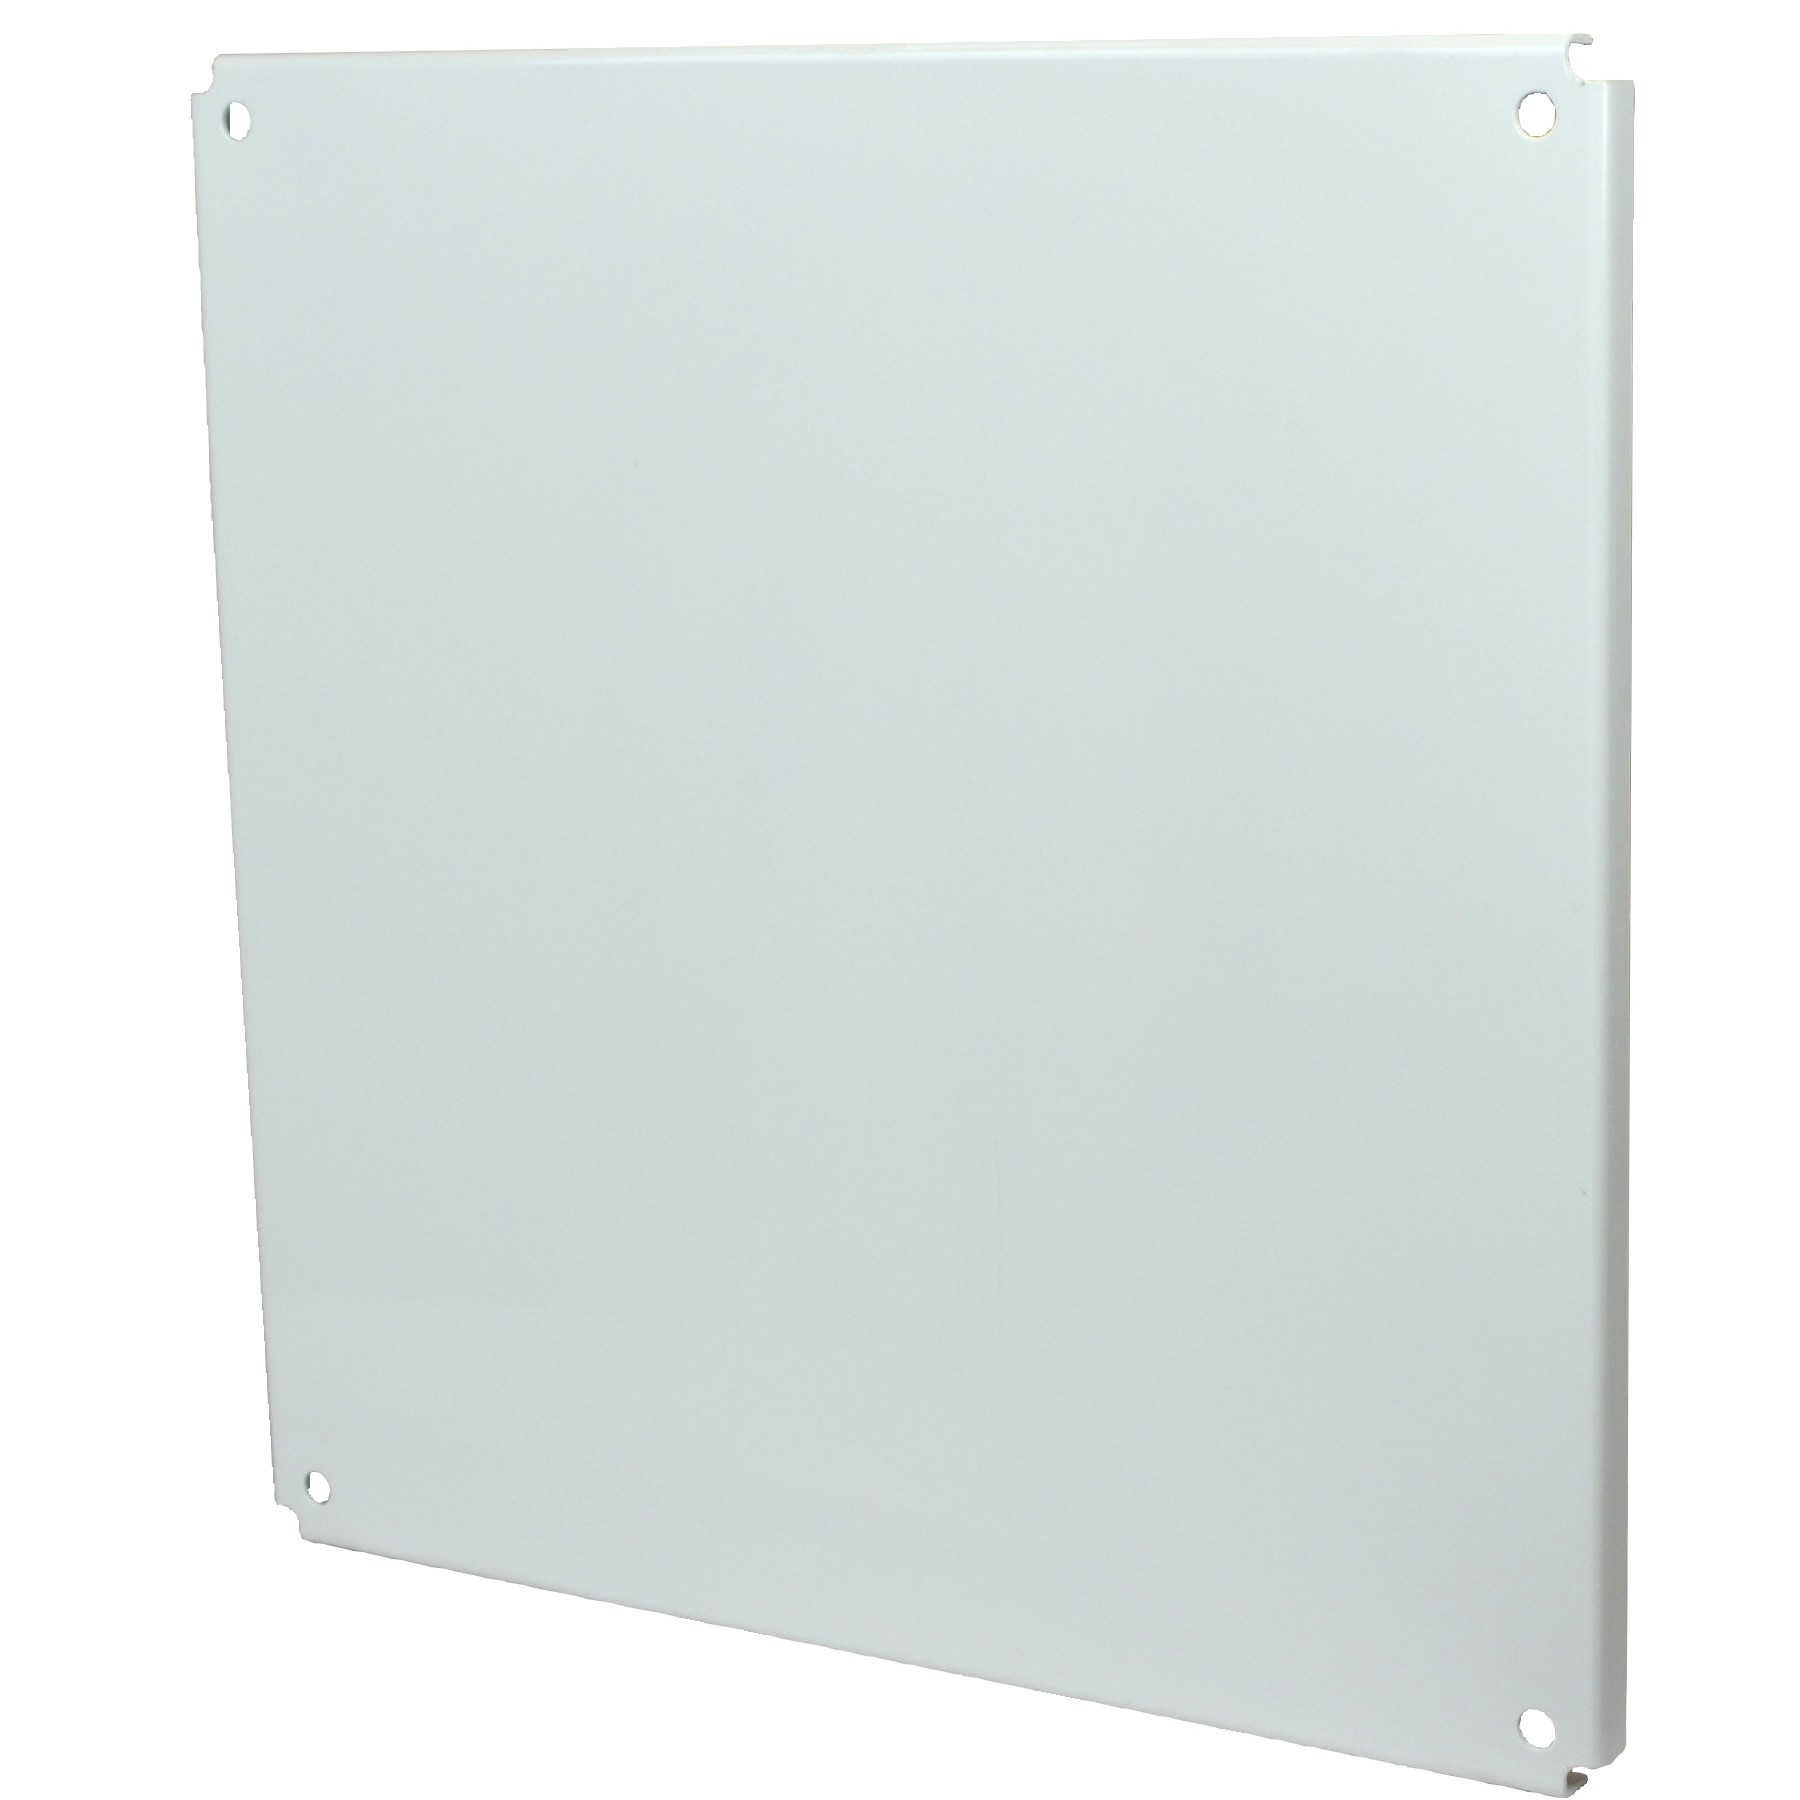 P2424 - Carbon Steel Enclosure Back Panel Kit